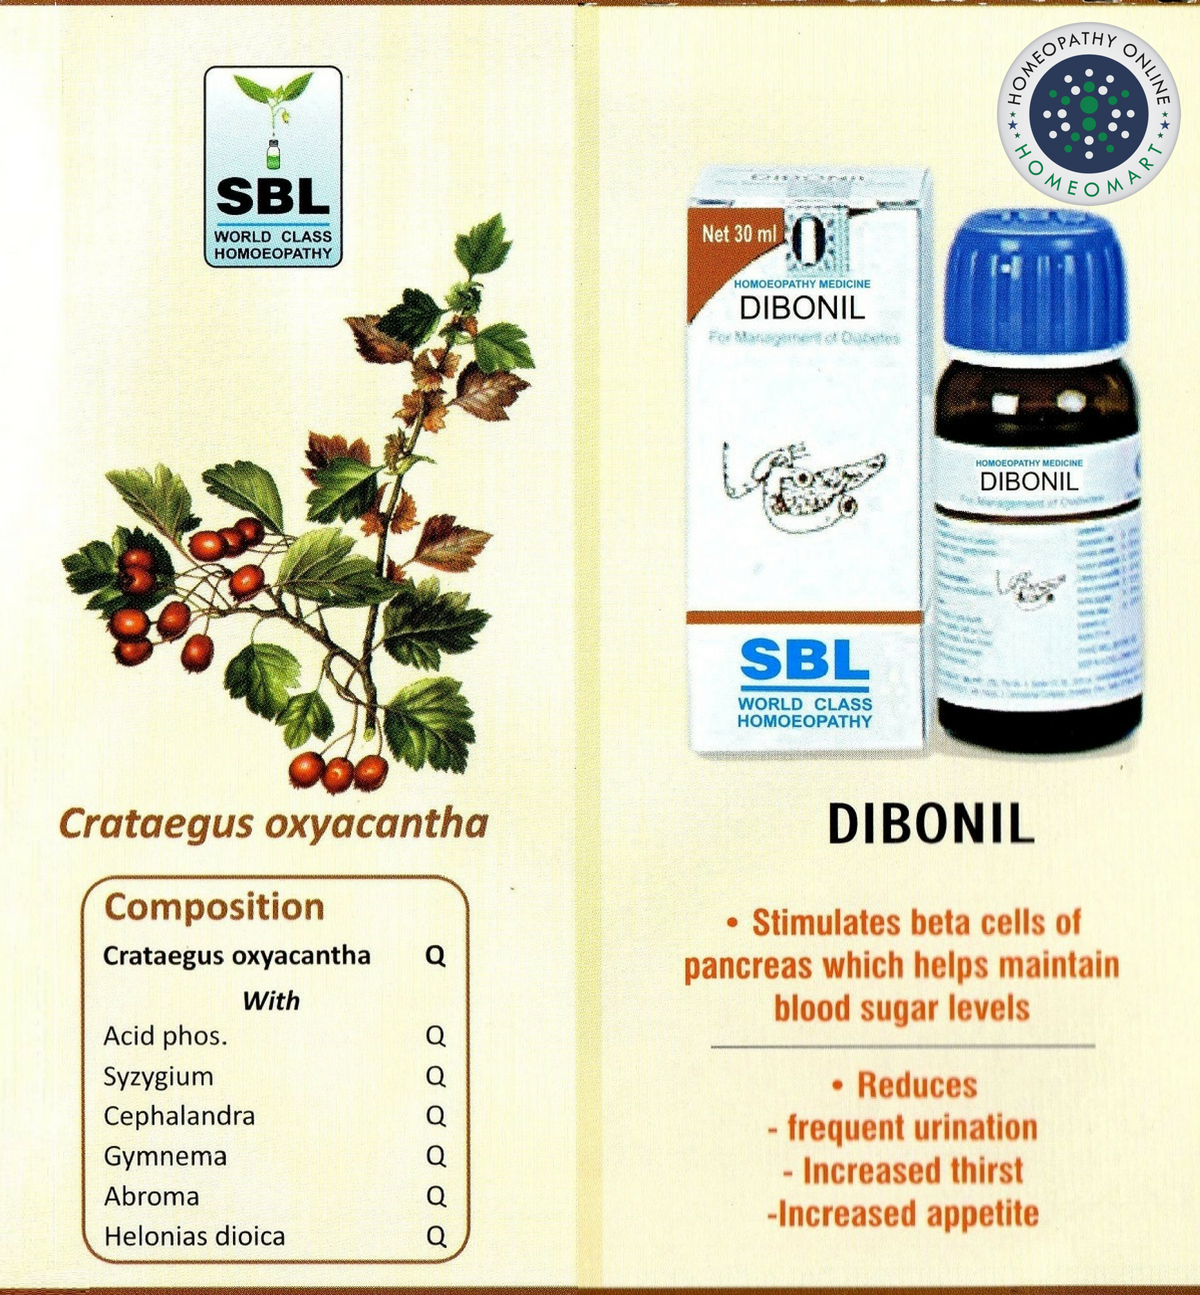 Buy SBL Dibonil Drops homeopathy medicine for diabetes